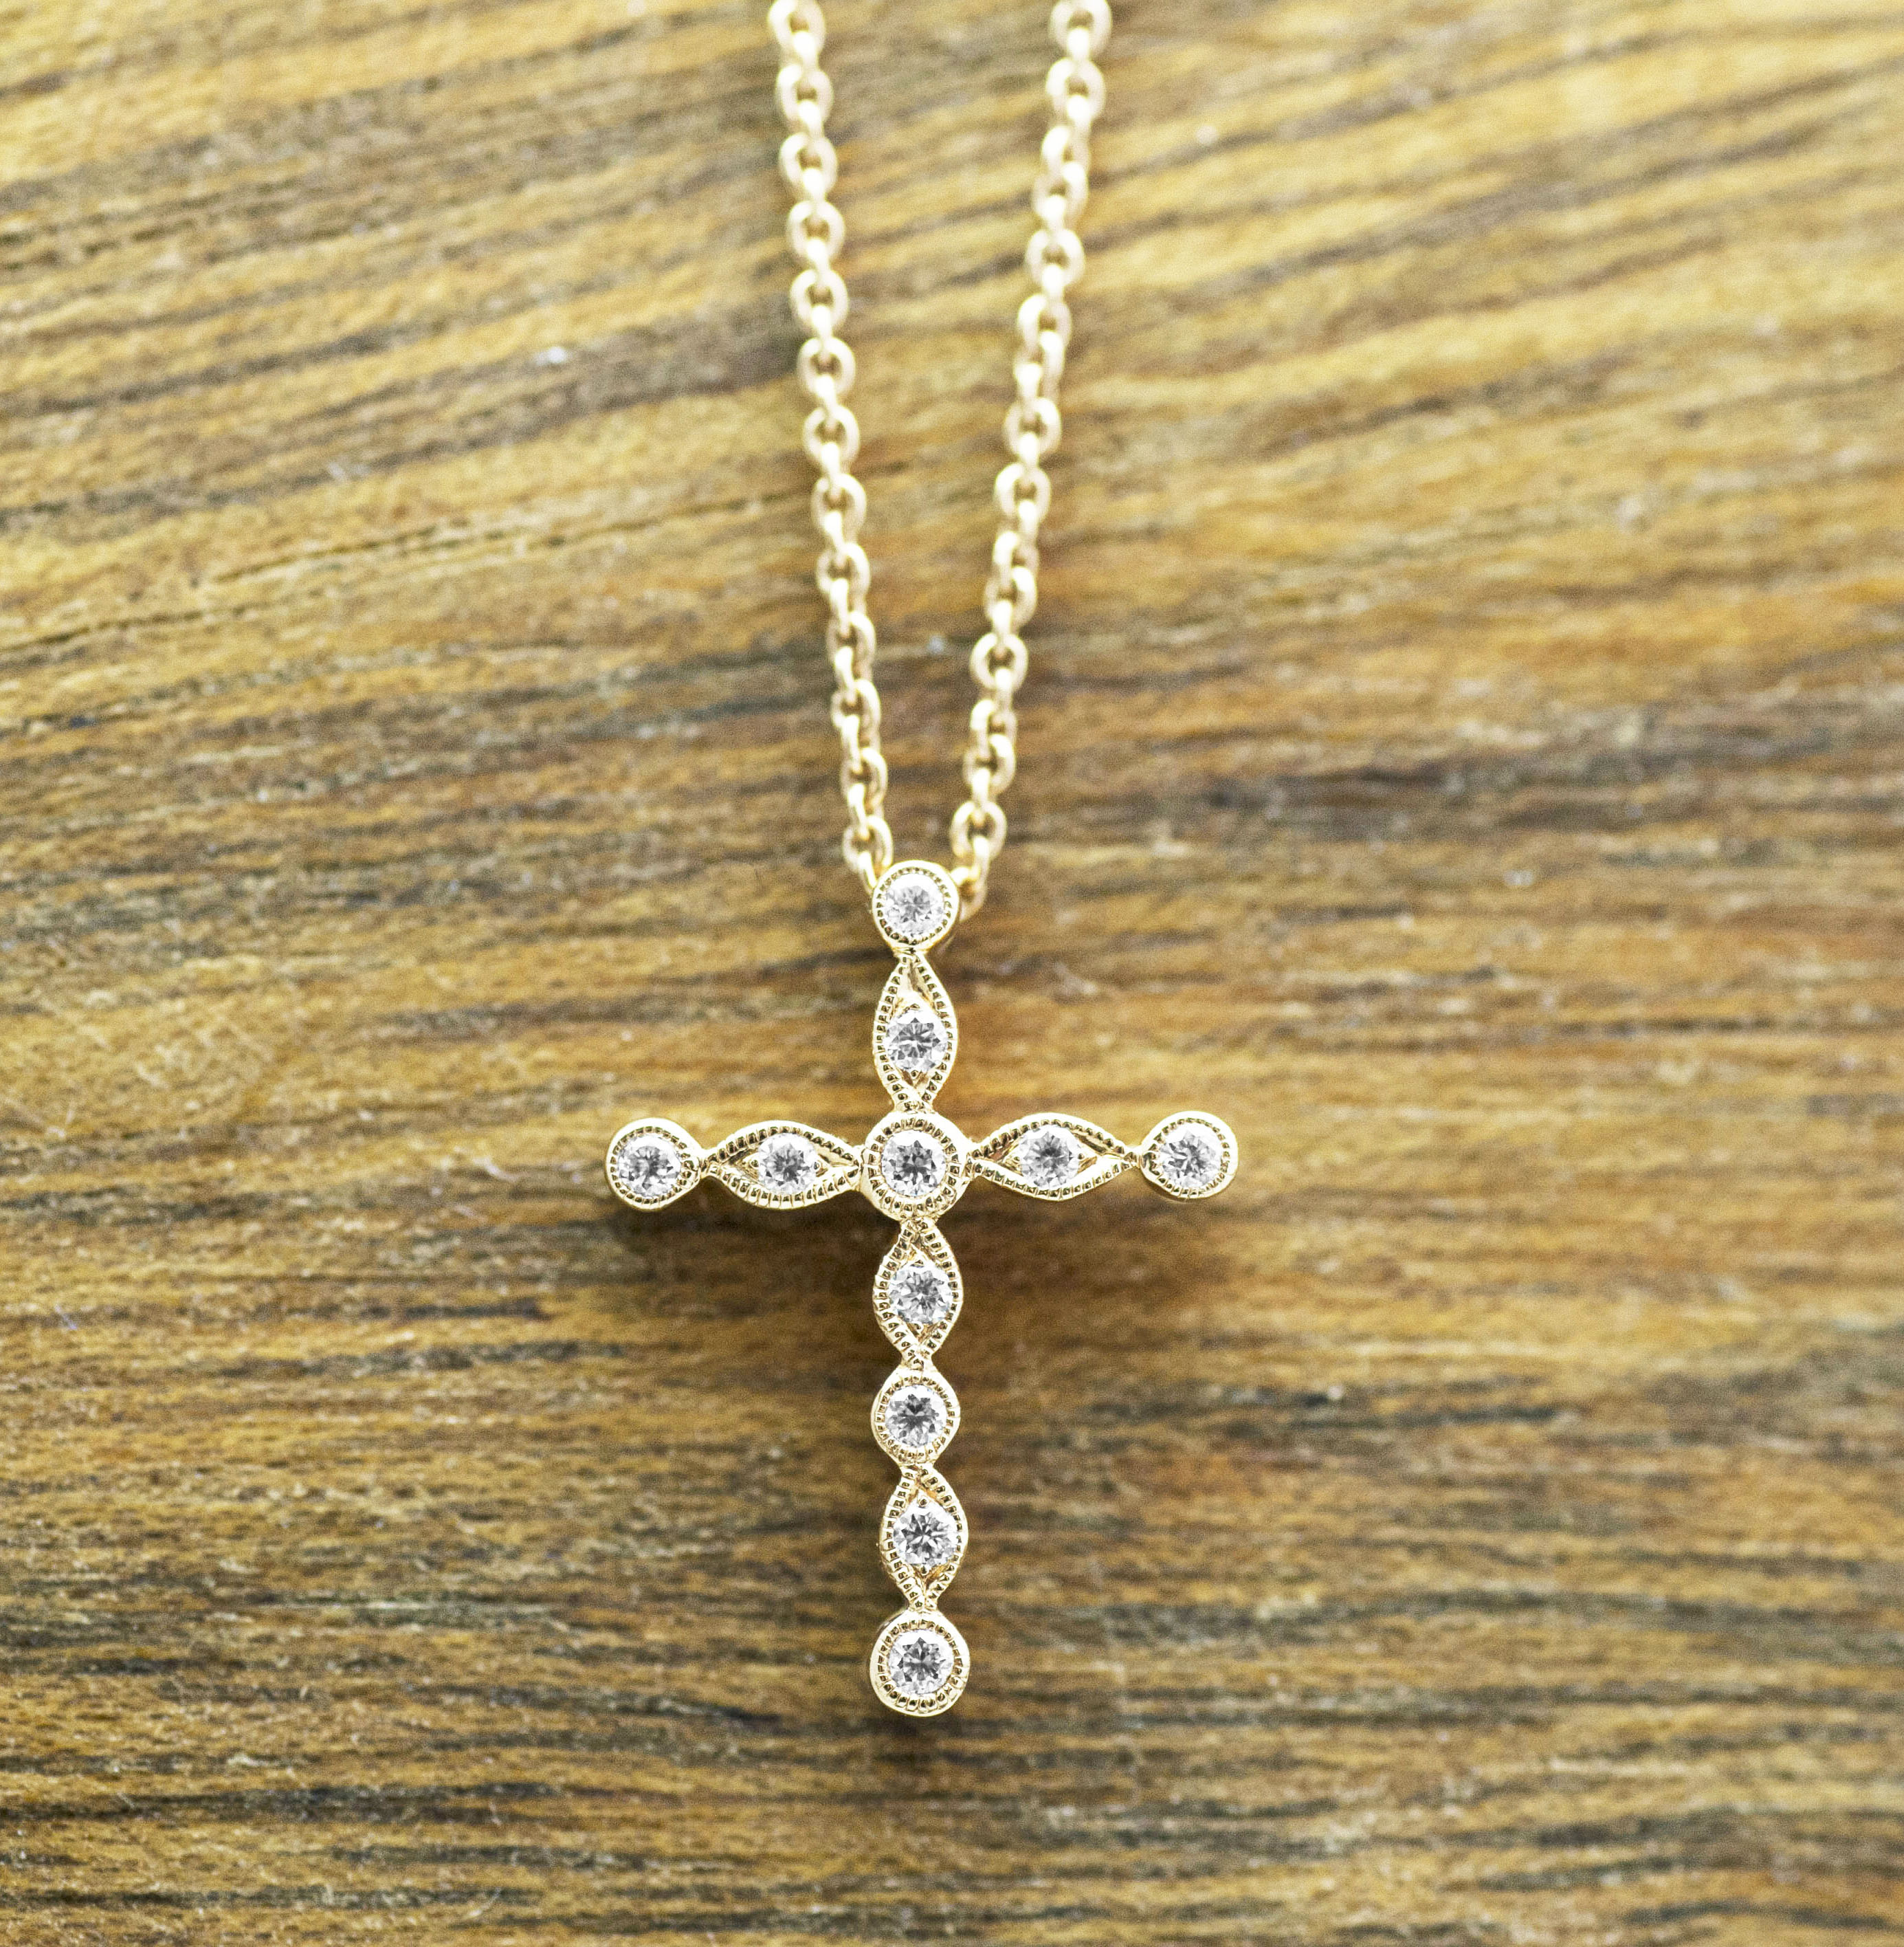 spring-jewelry-Easter-cross-pendant